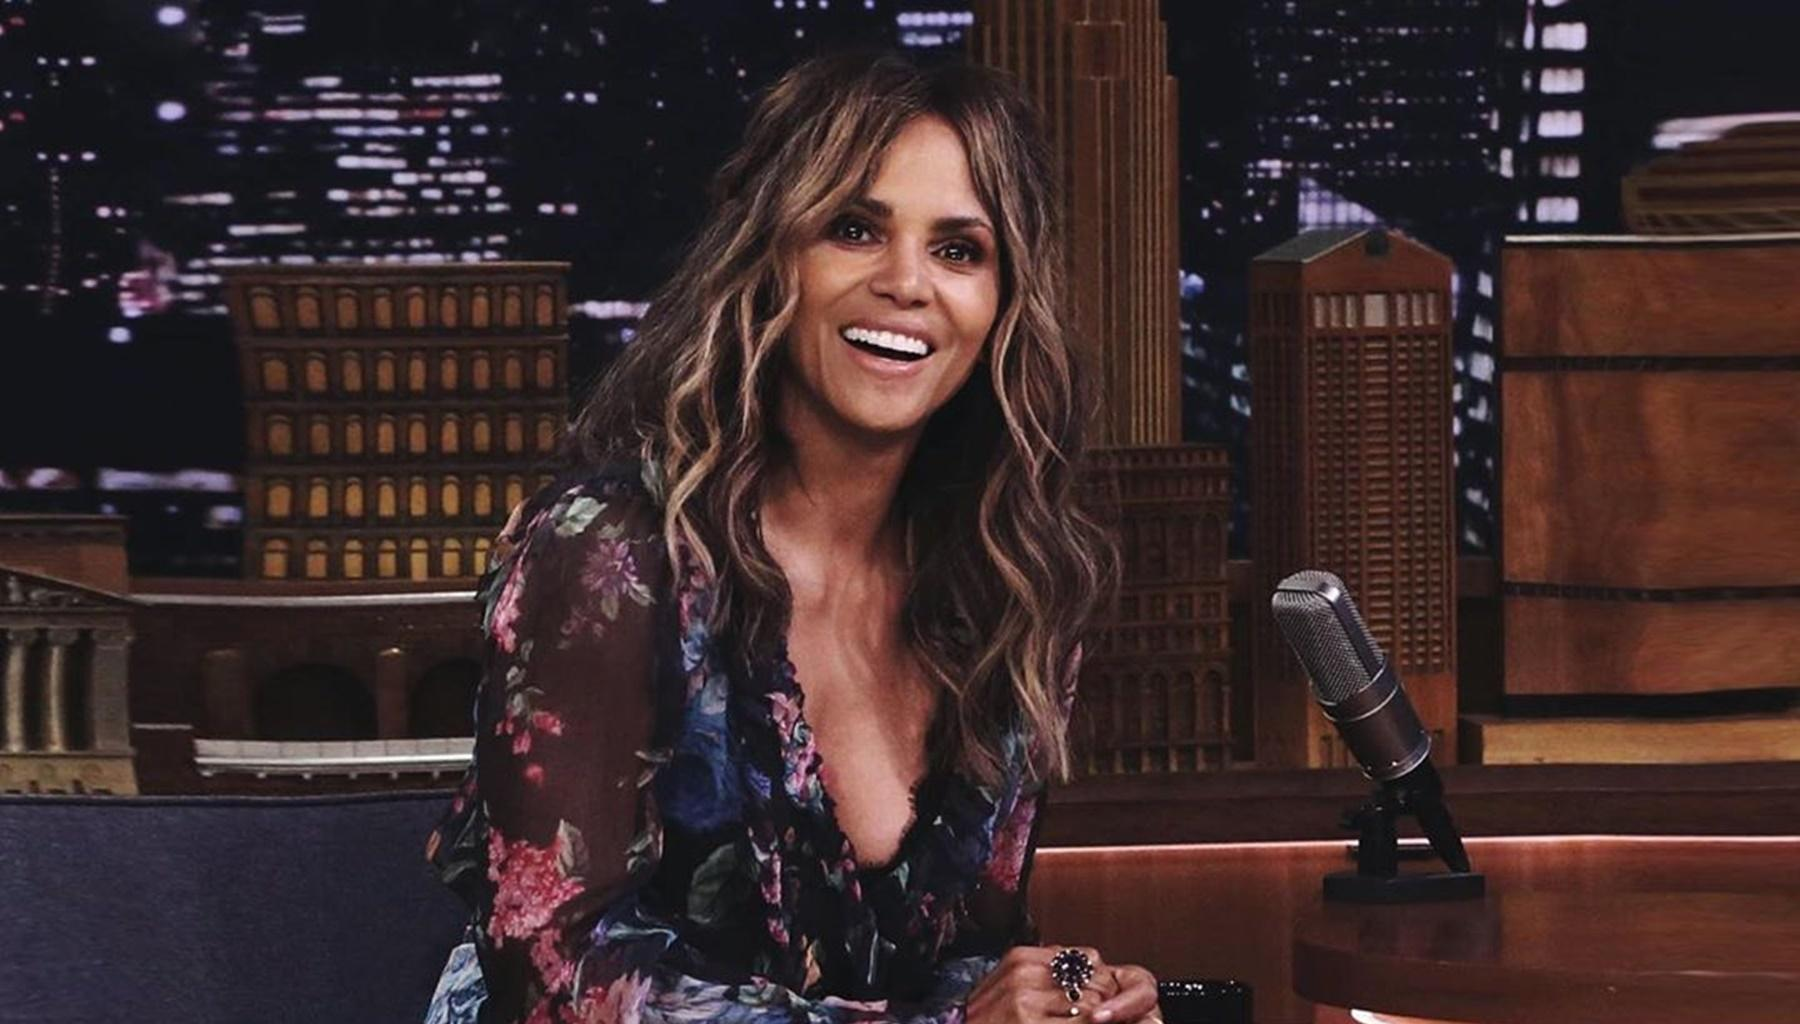 Halle Berry Breaks The Internet Again By Sharing Kiss With Lena Waithe, Hours After Doing It With This Picture